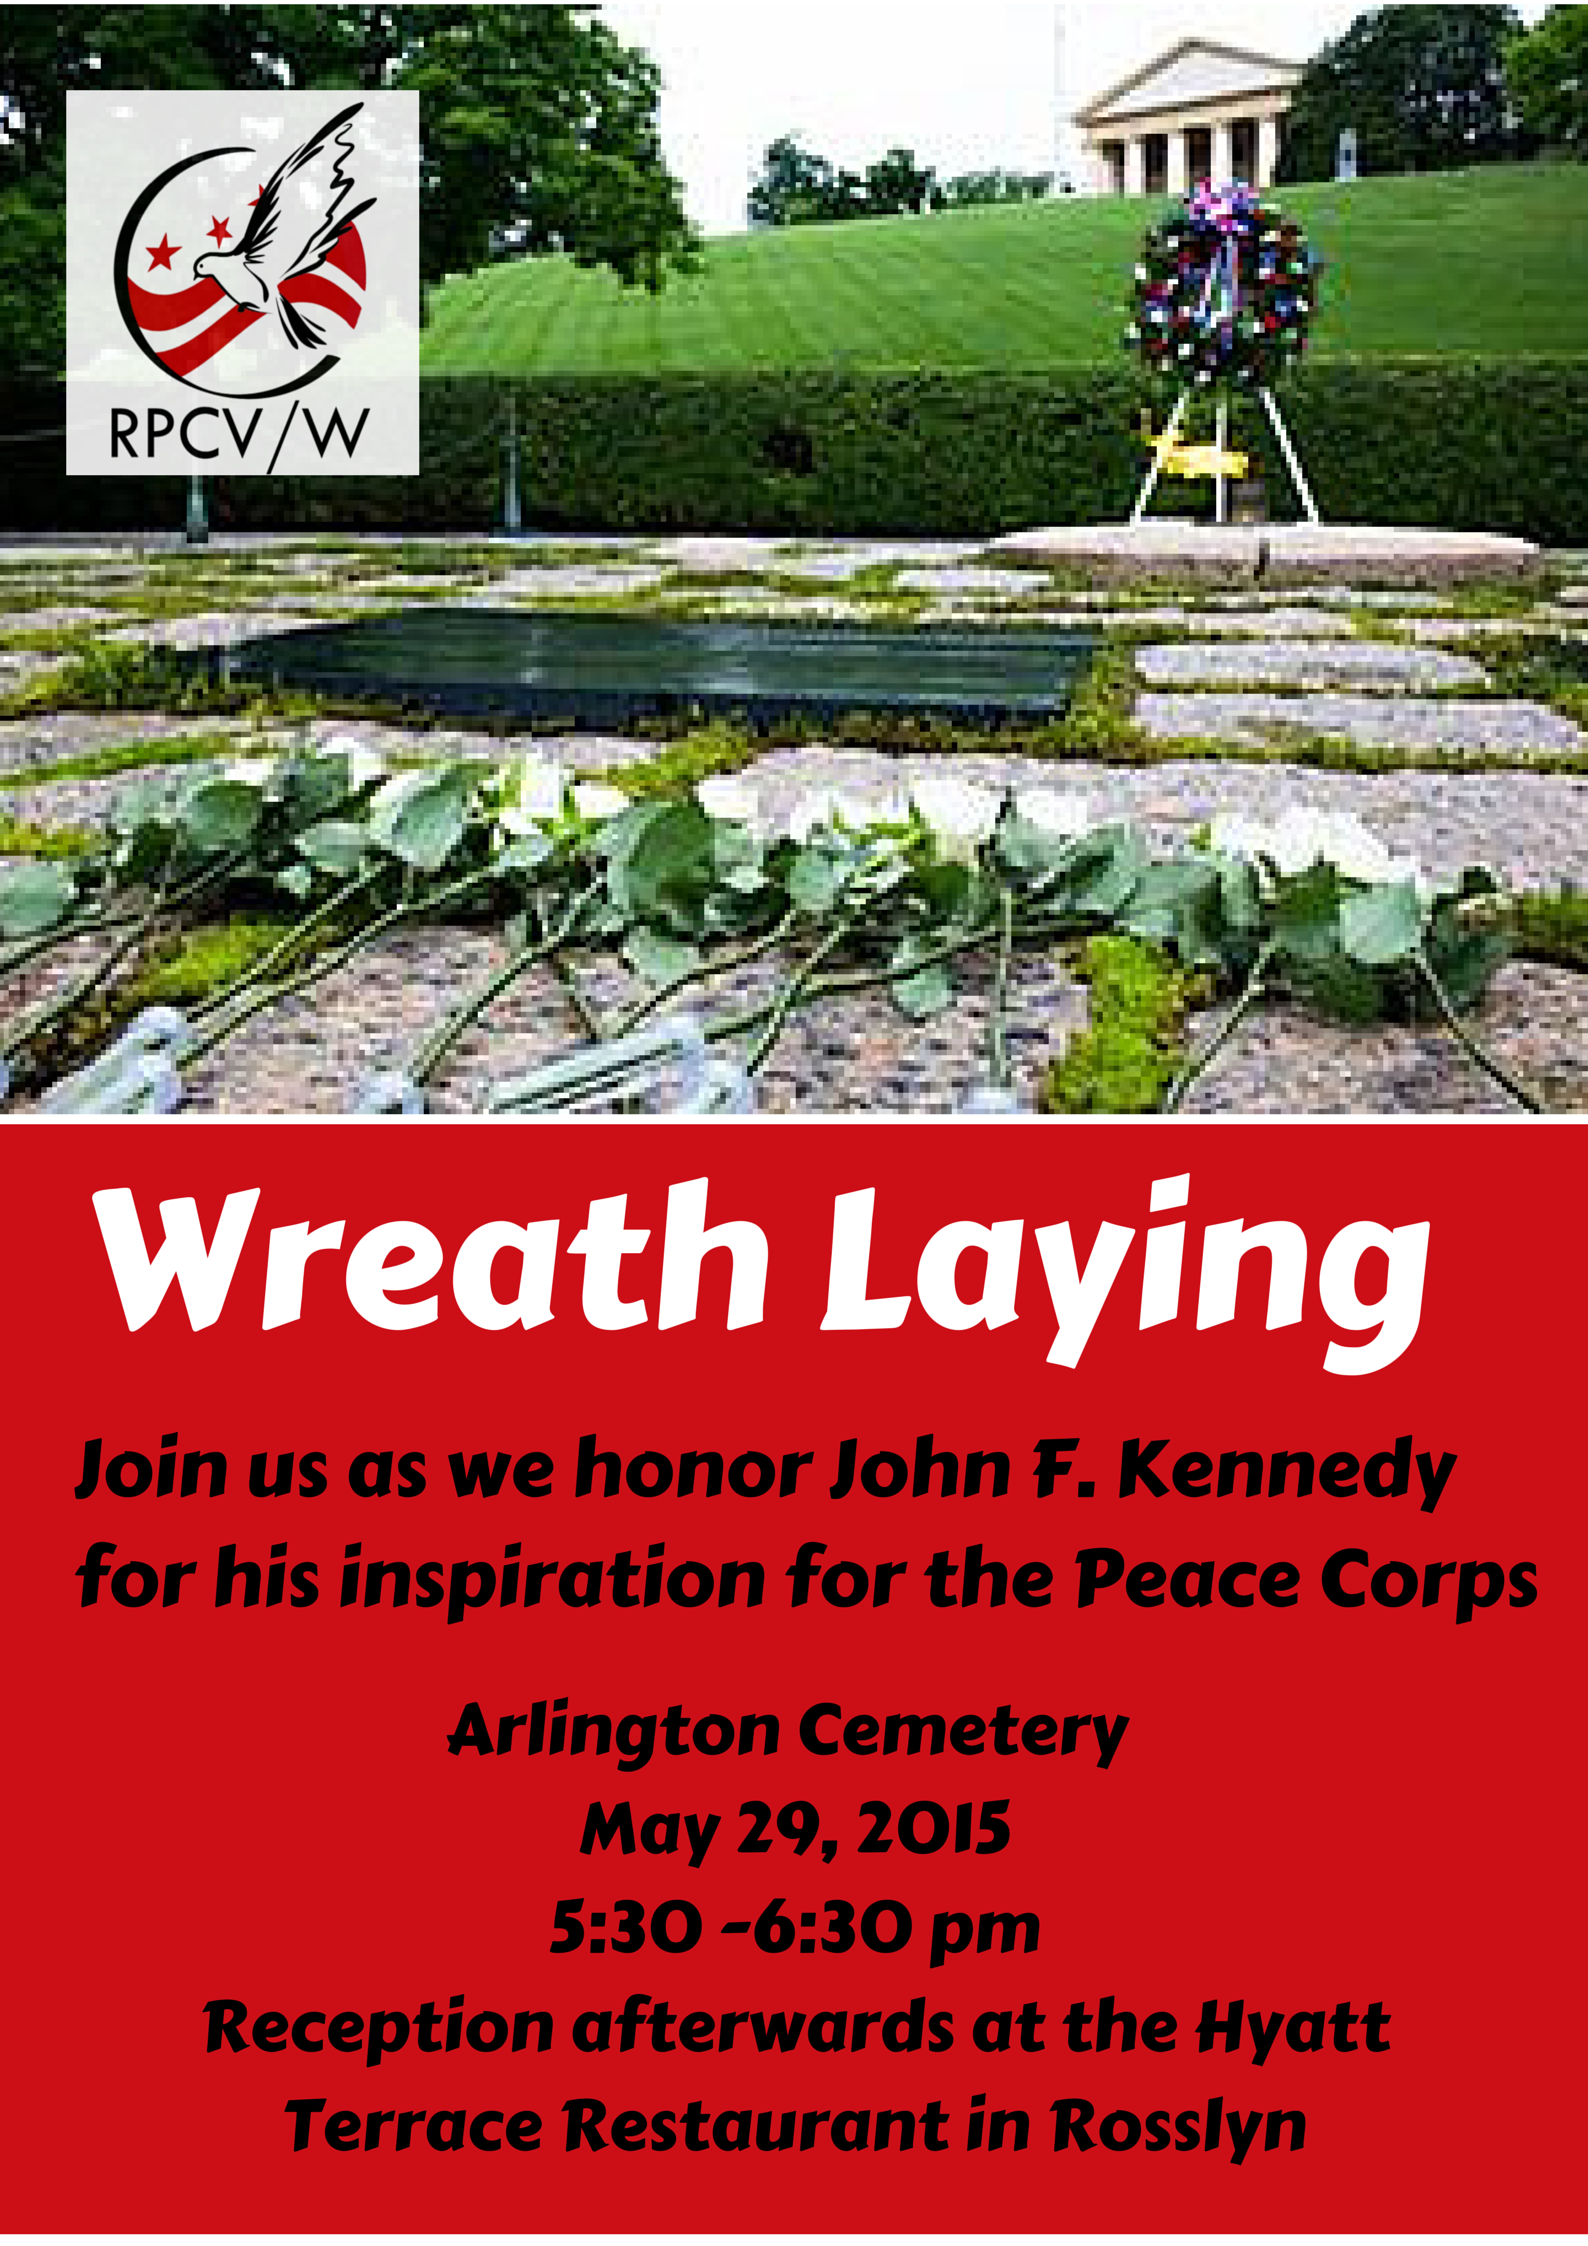 http://d3n8a8pro7vhmx.cloudfront.net/rpcvw/pages/500/meta_images/original/Wreath_Laying_(1).png?1430446465